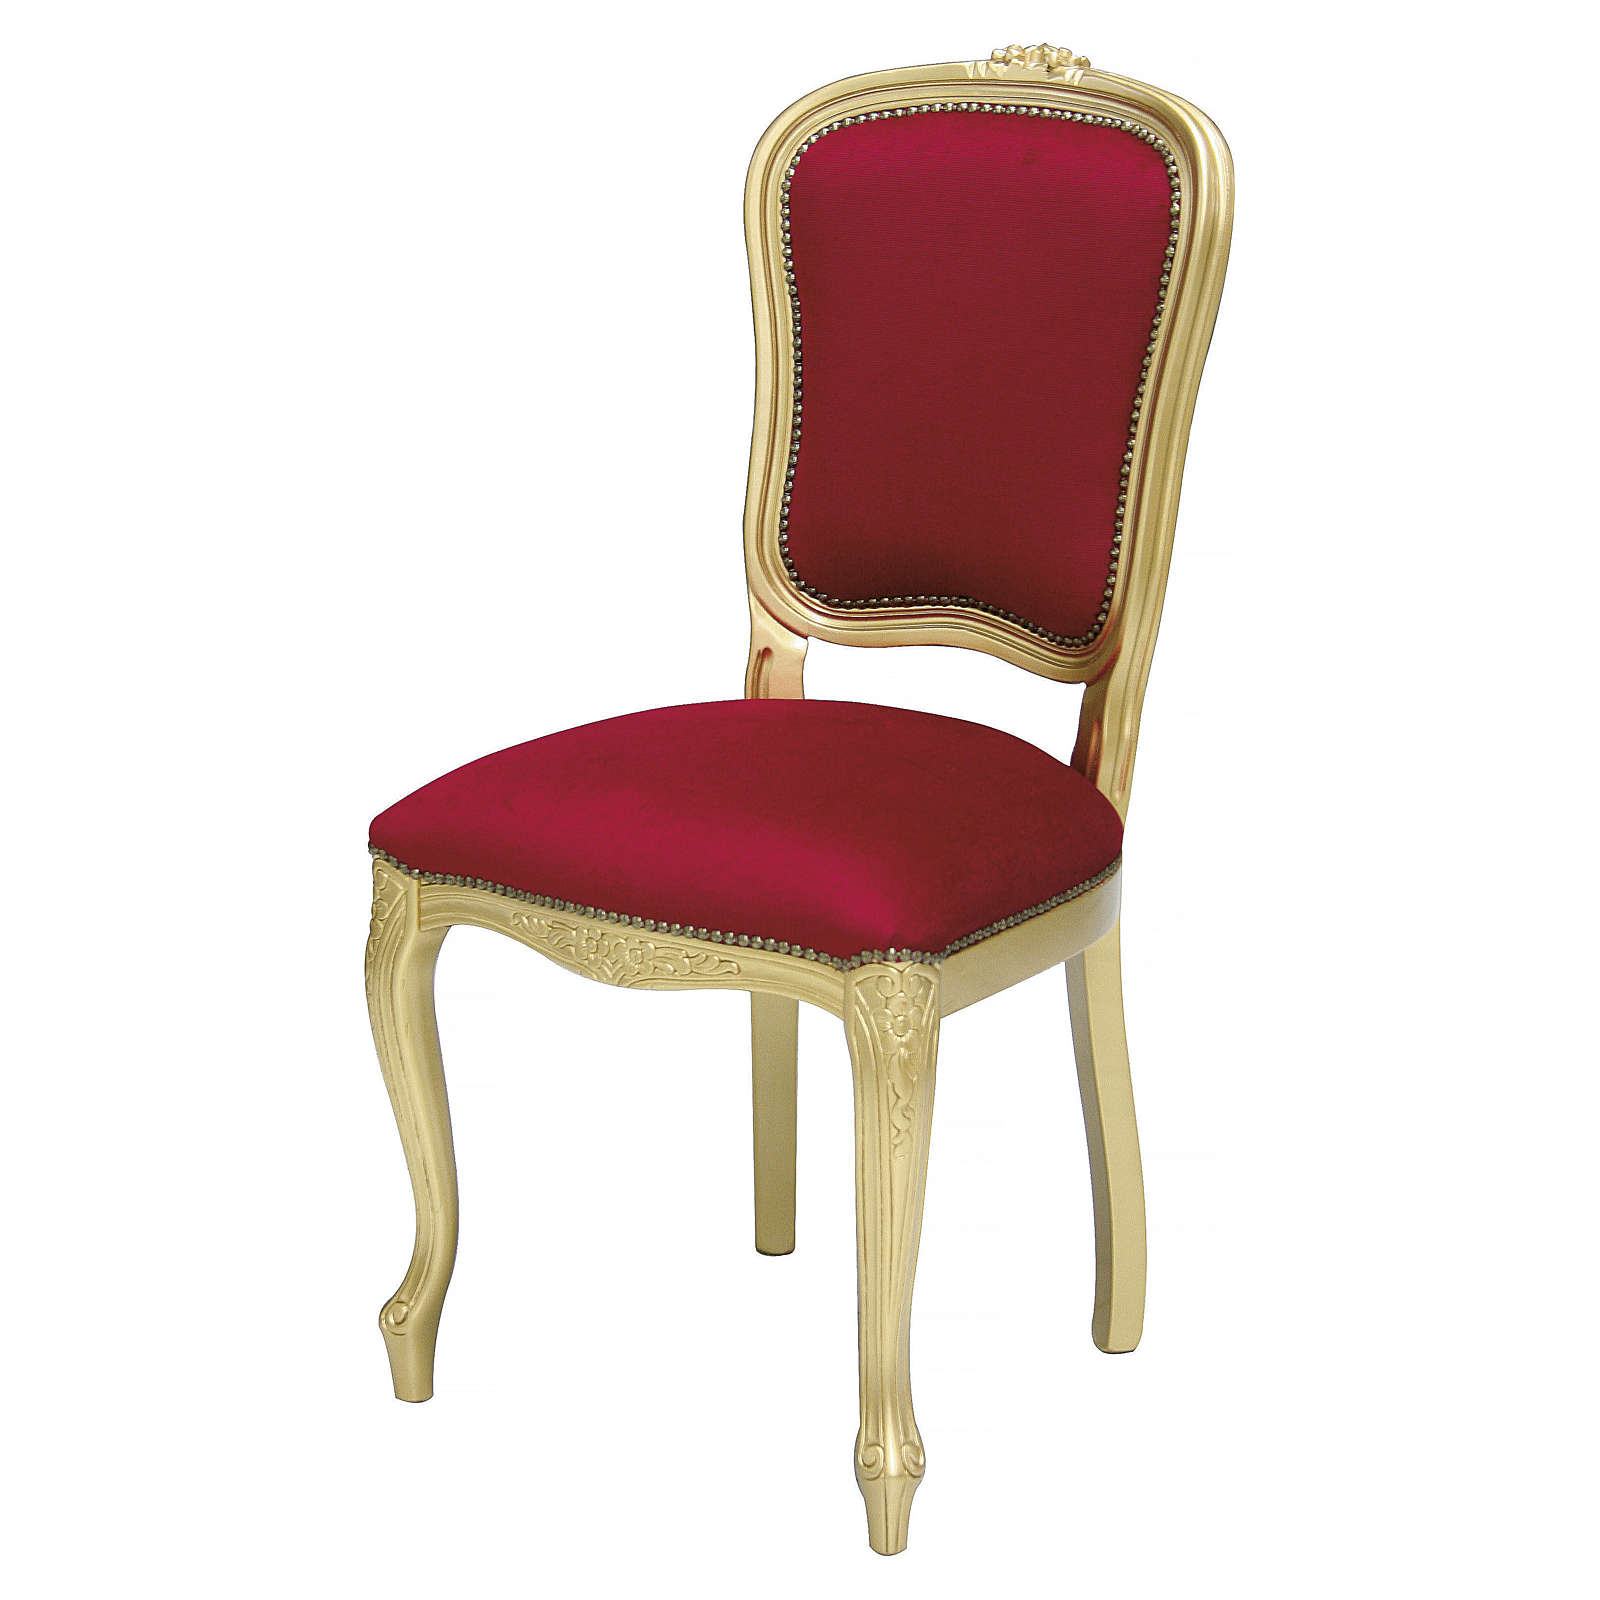 Chaise bois noyer baroque feuille or velours rouge 4